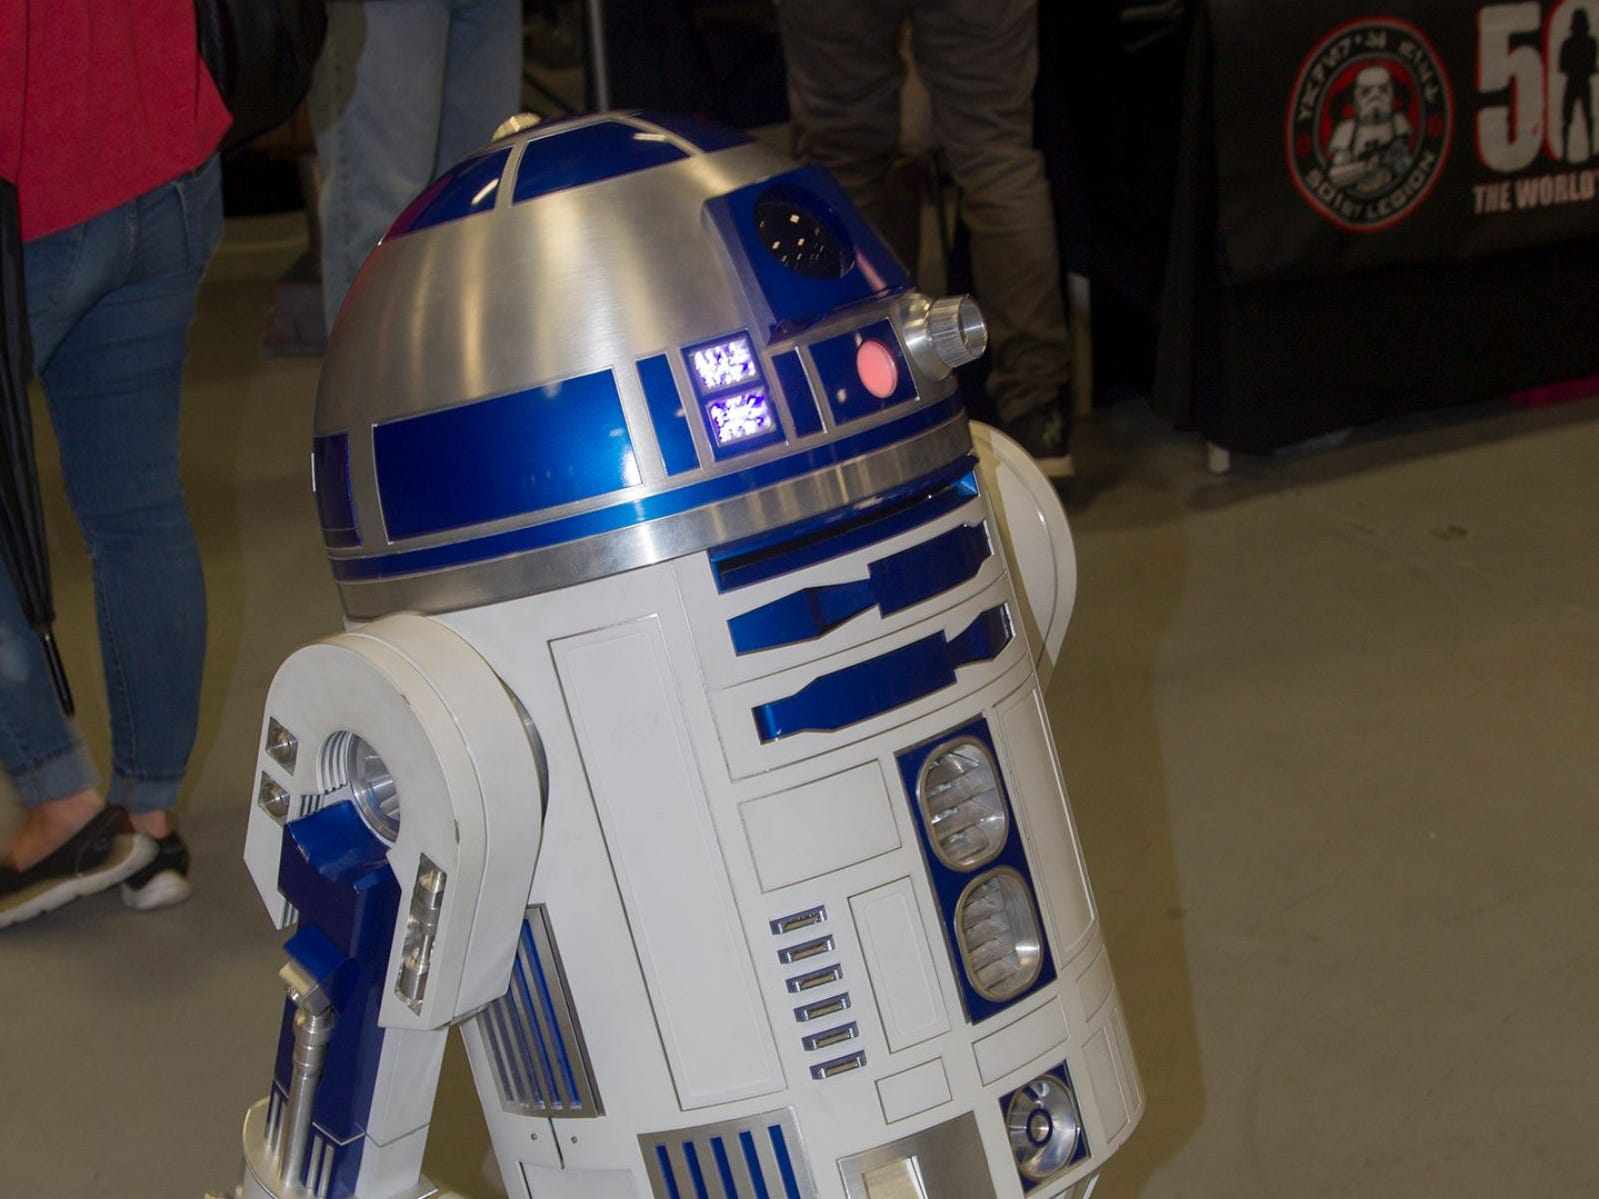 R2-D2. The 2018 Heroes and Villains Fan Fest took place at the New Jersey Convention & Expo Center. 09/09/2018